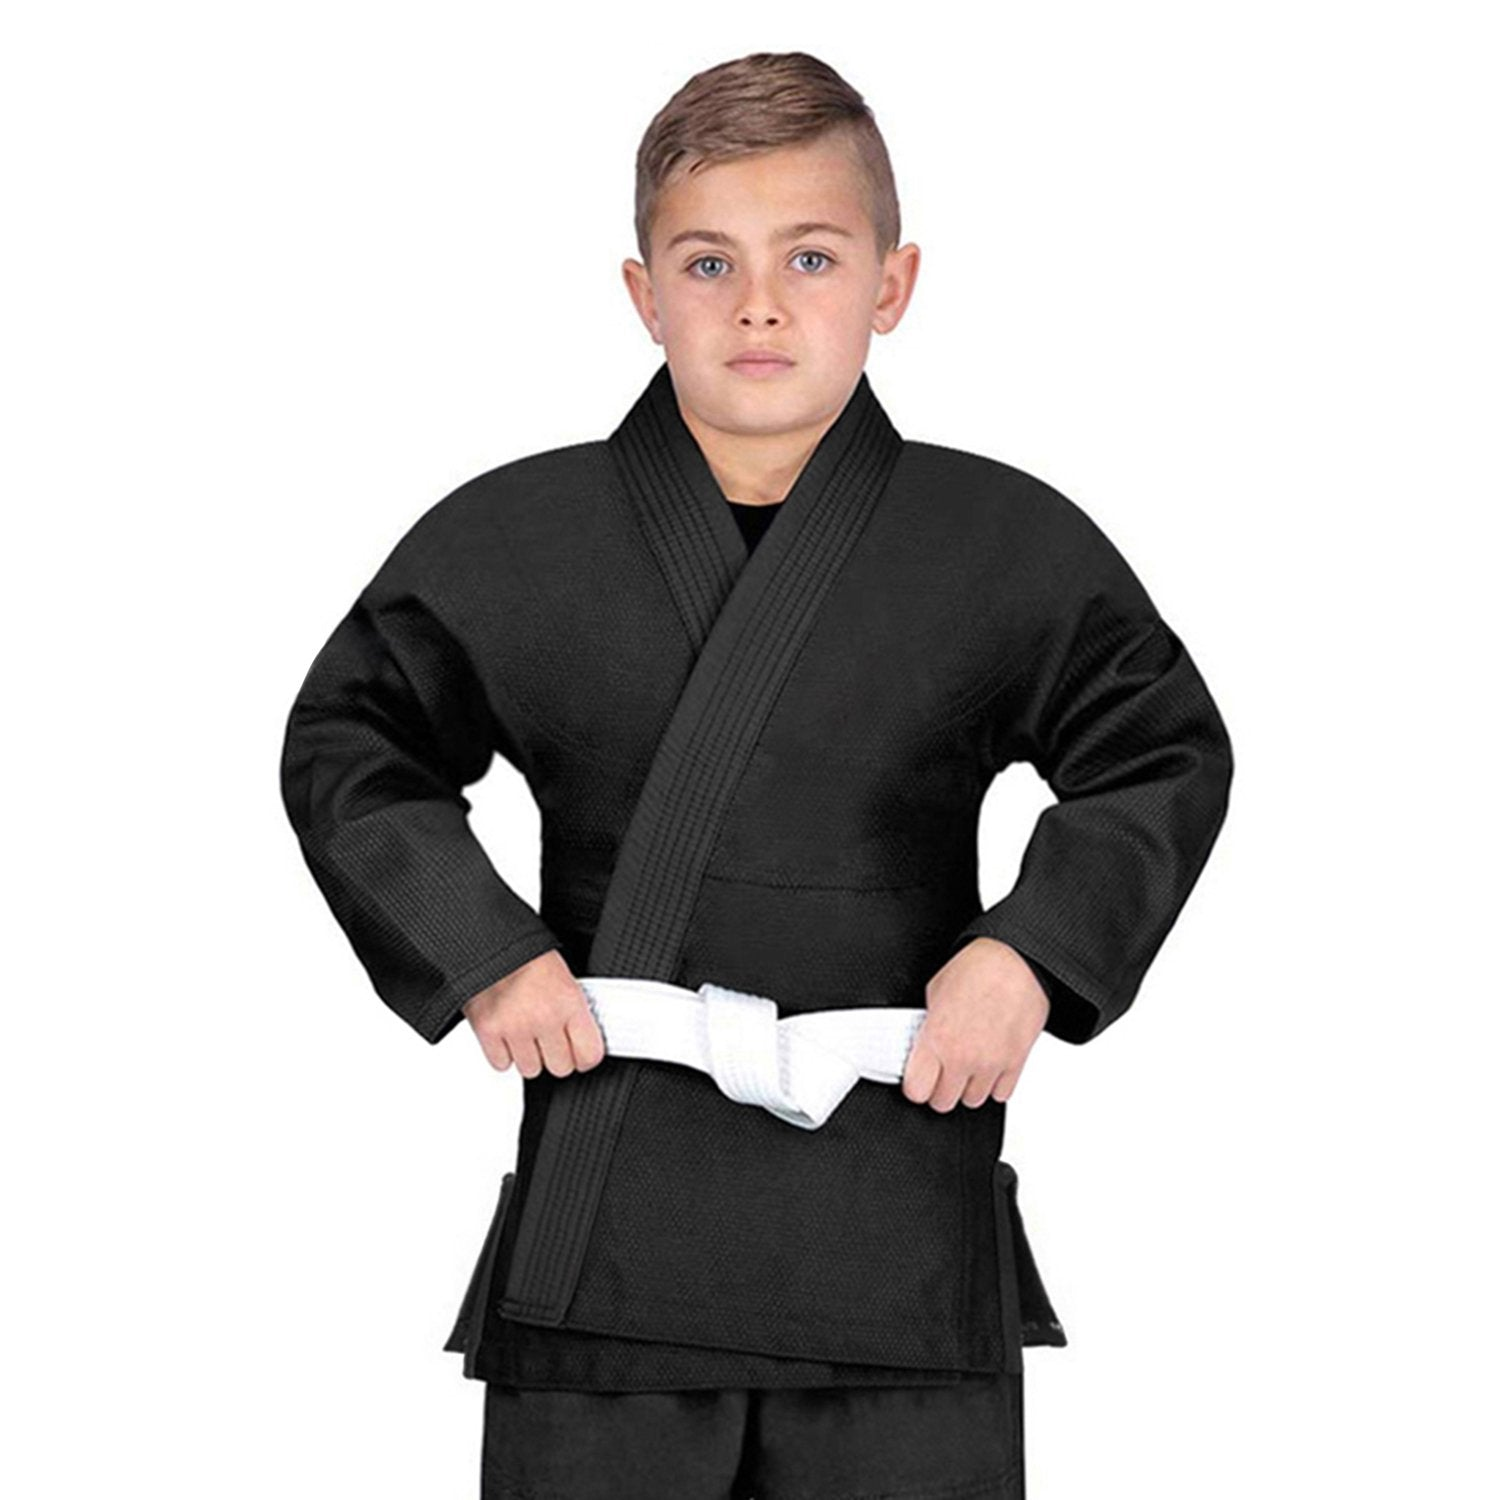 Elite Sports Essential Lightweight Preshrunk Black Kids Brazilian Jiu Jitsu BJJ Gi With Free White Belt